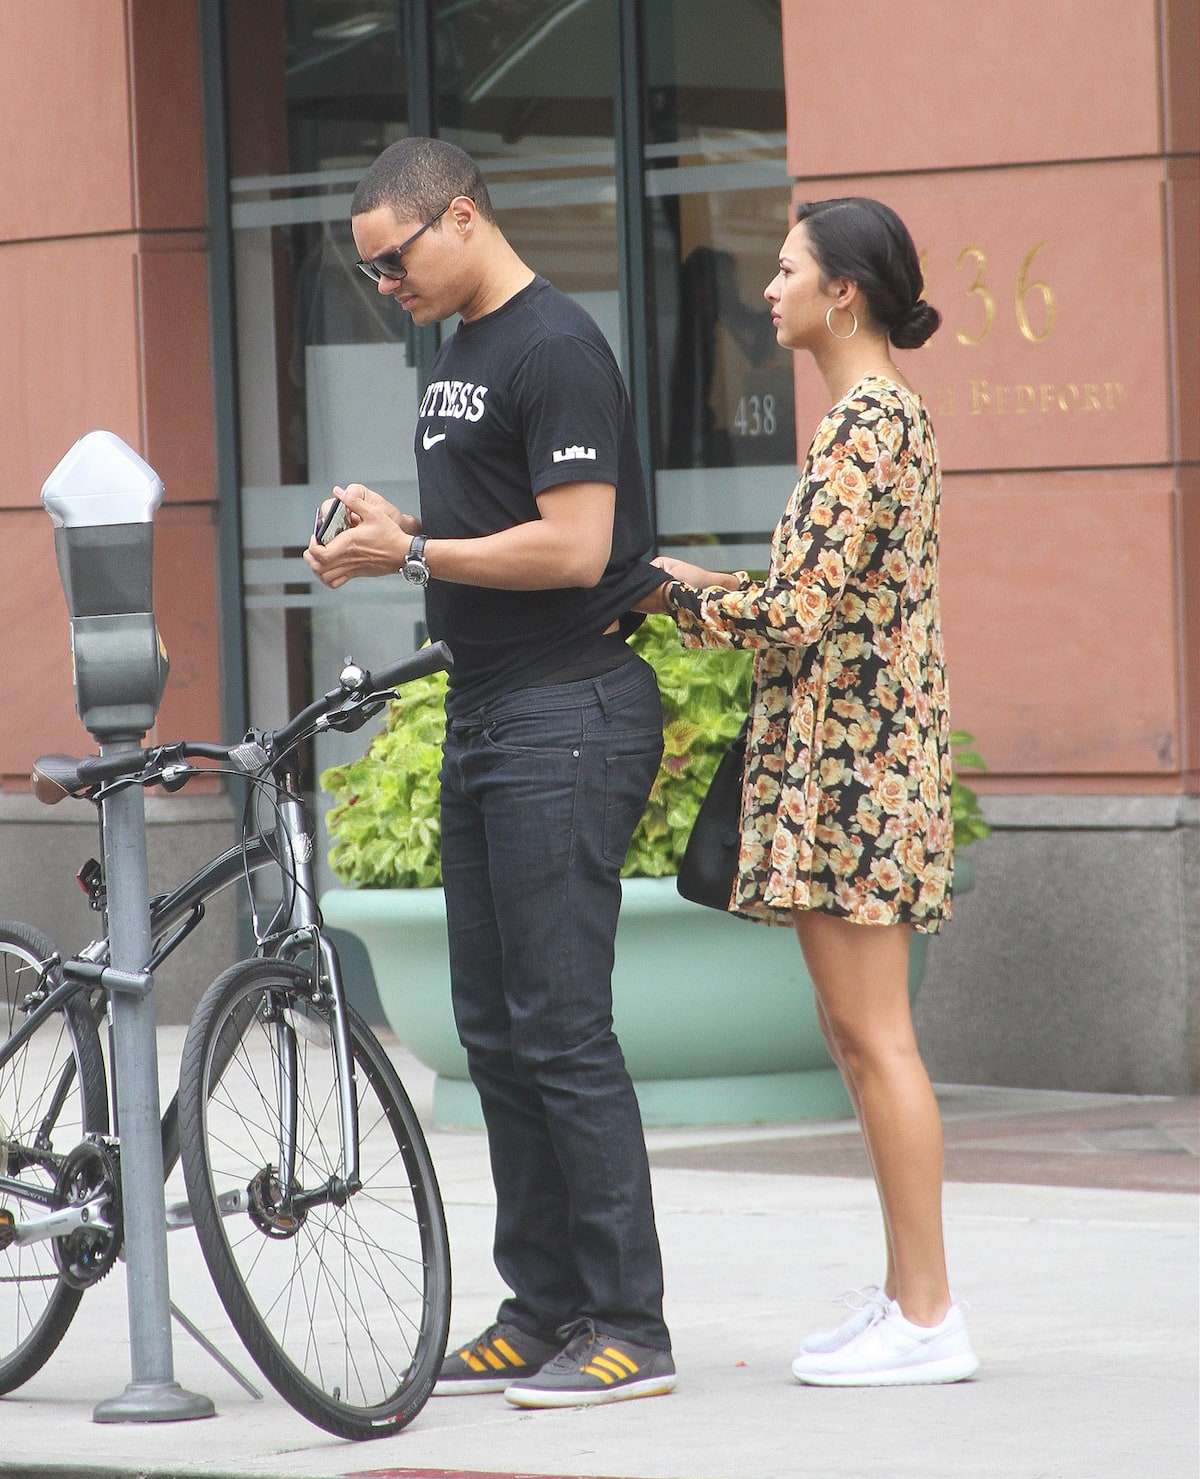 Who is Trevor Noah girlfriend? trevor noah girl friend jordan taylor trevor noah jordan taylor model